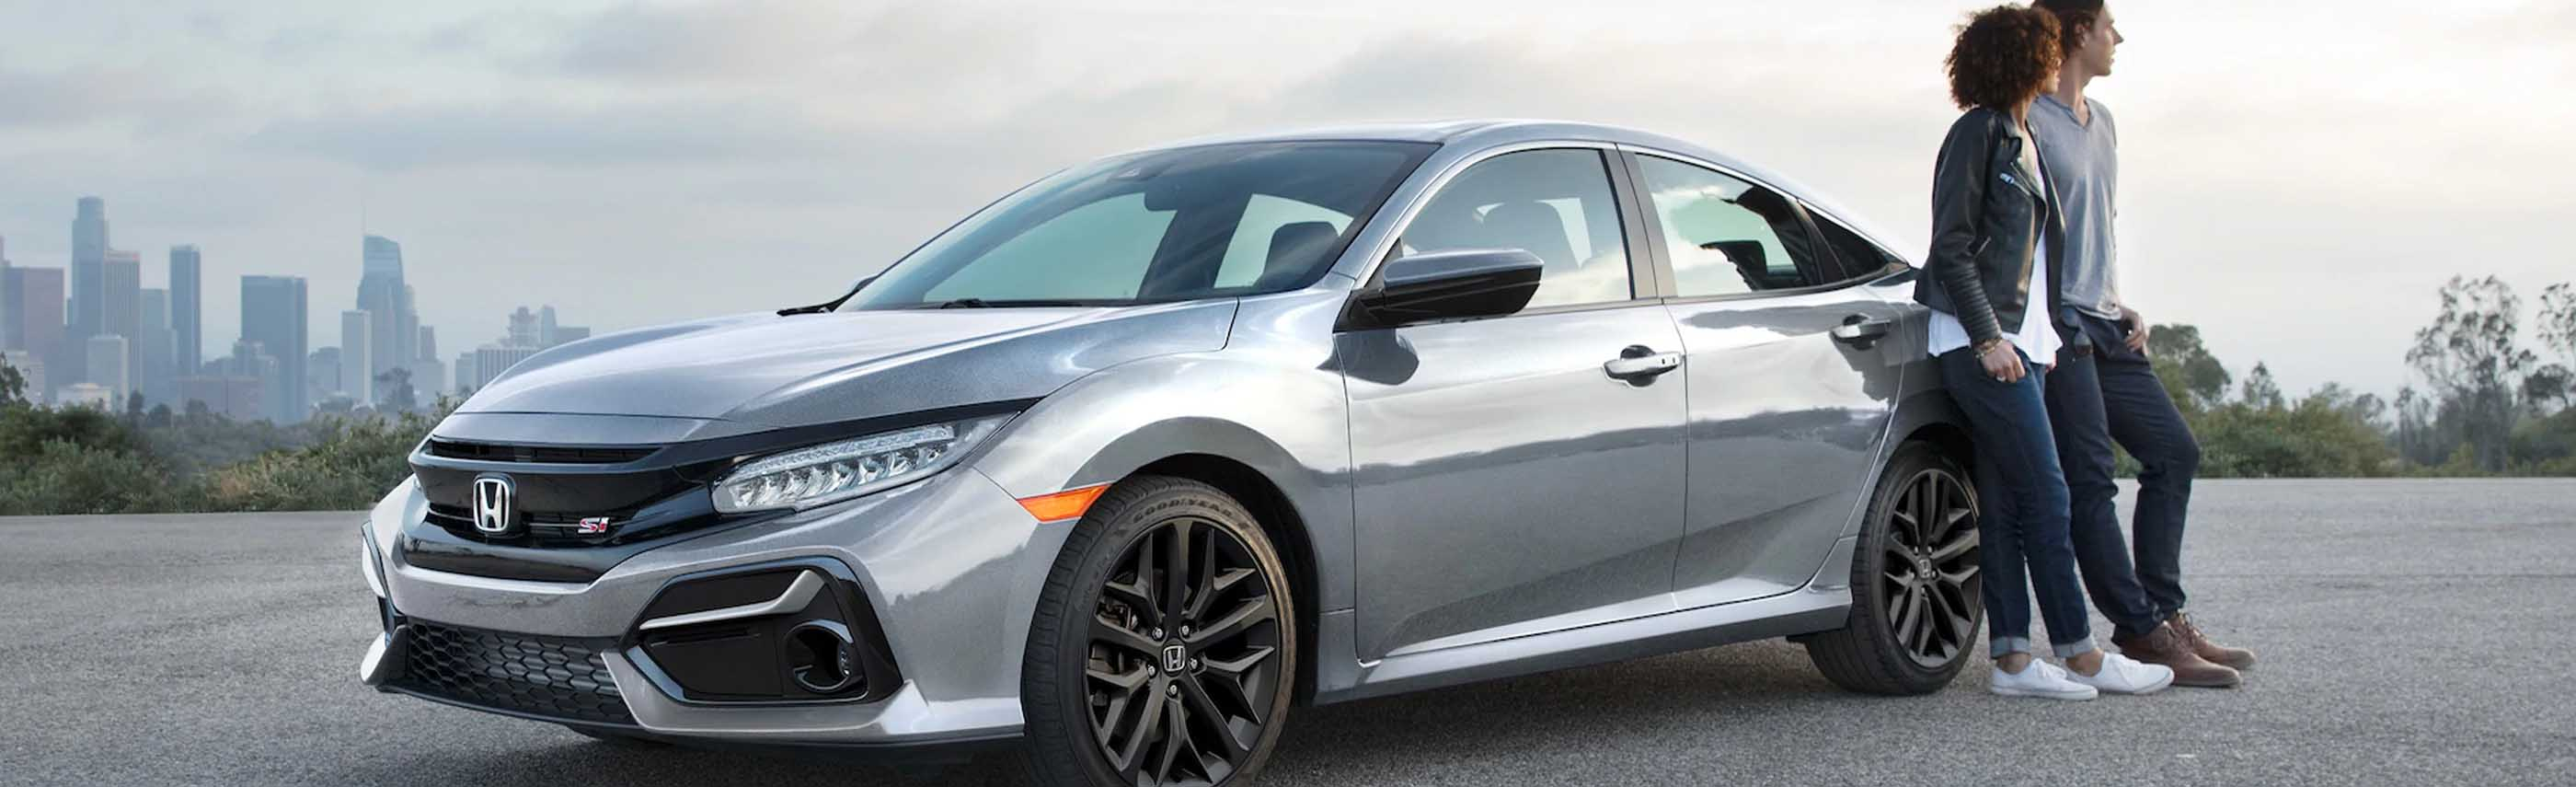 Snag A 2020 Civic Si Sedan From Our Corpus Christi, Texas, Honda Dealer